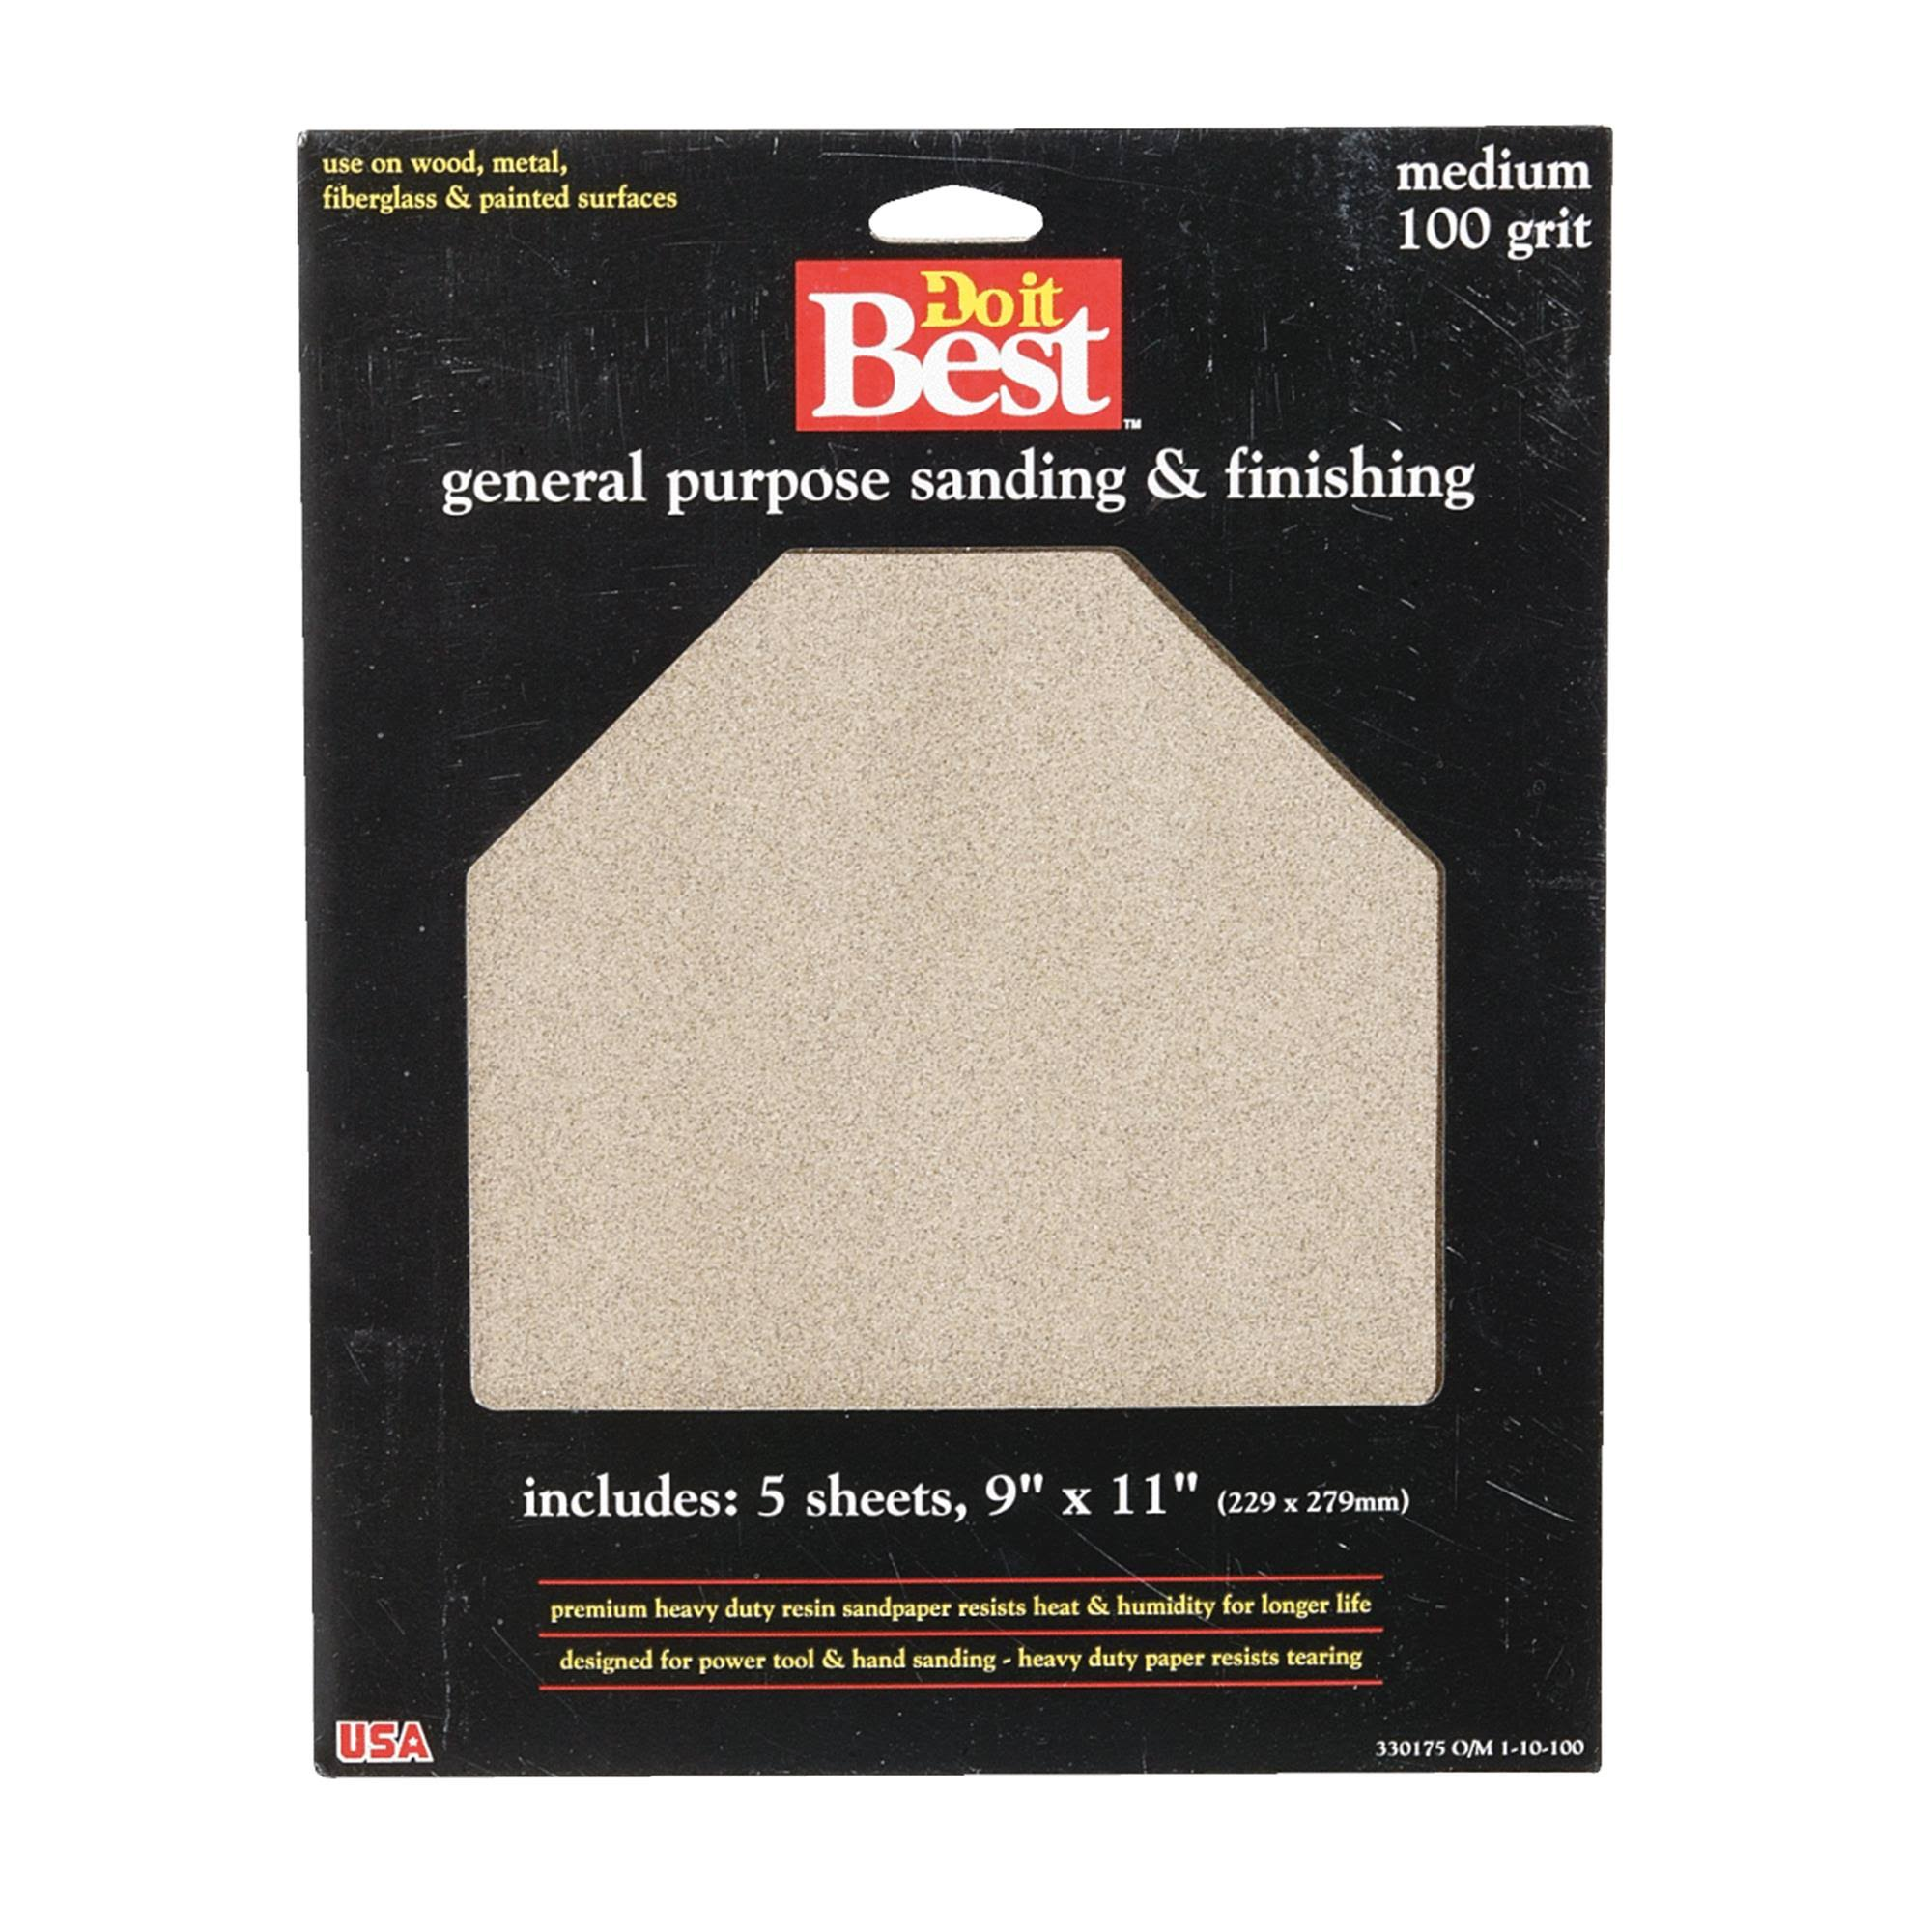 "Do It Best General Purpose Sanding & Finishing Sheets - 9"" x 11"", 5 Sheets"